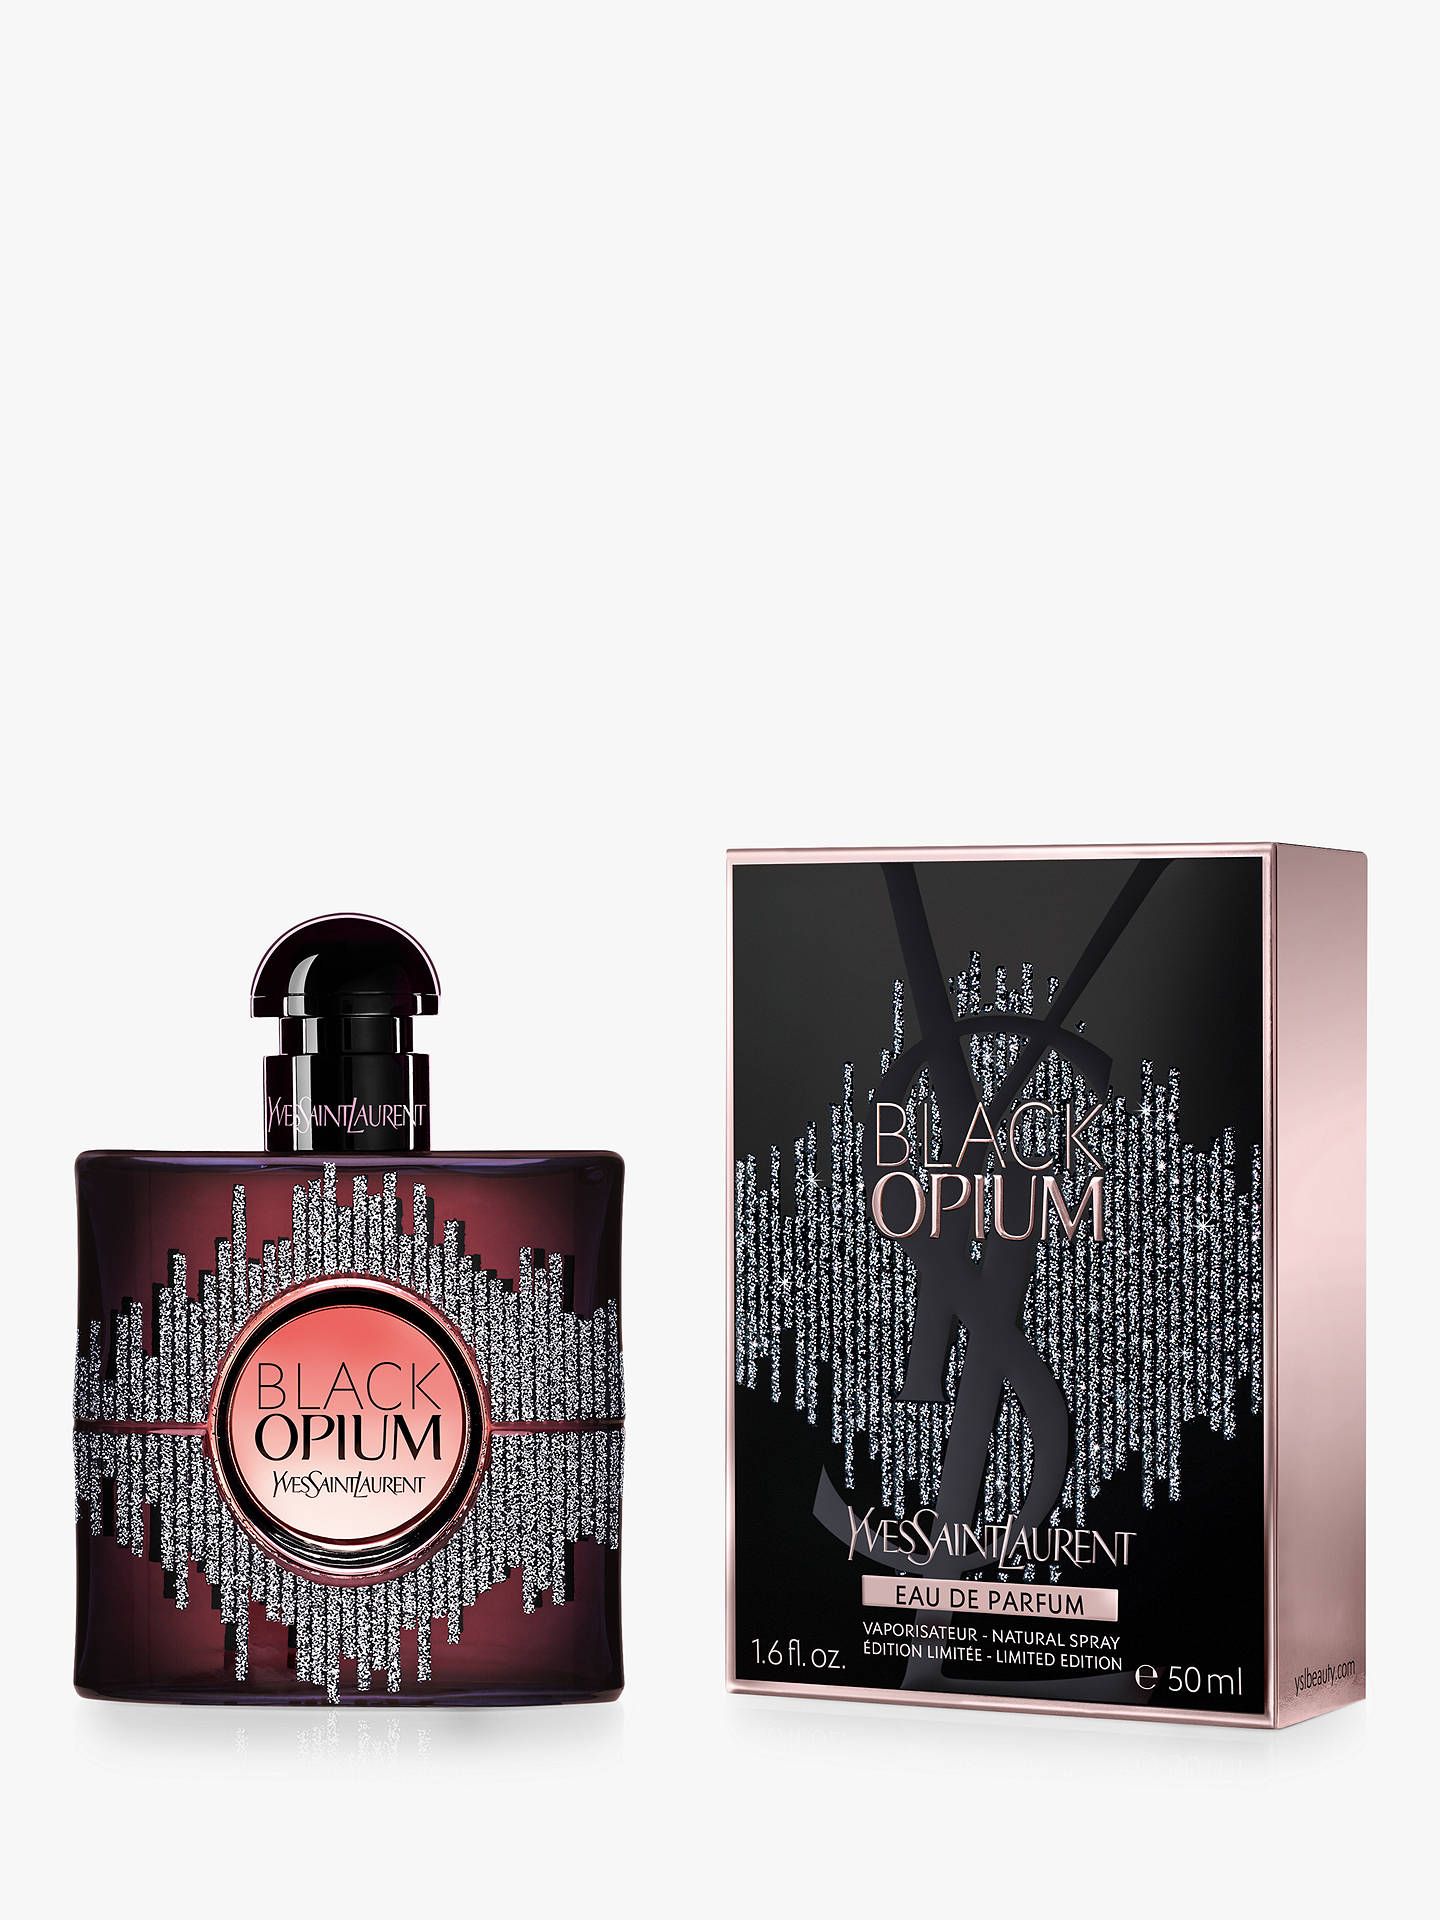 BuyYves Saint Laurent Black Opium Sound Illusion Eau de Parfum, 50ml Online at johnlewis.com